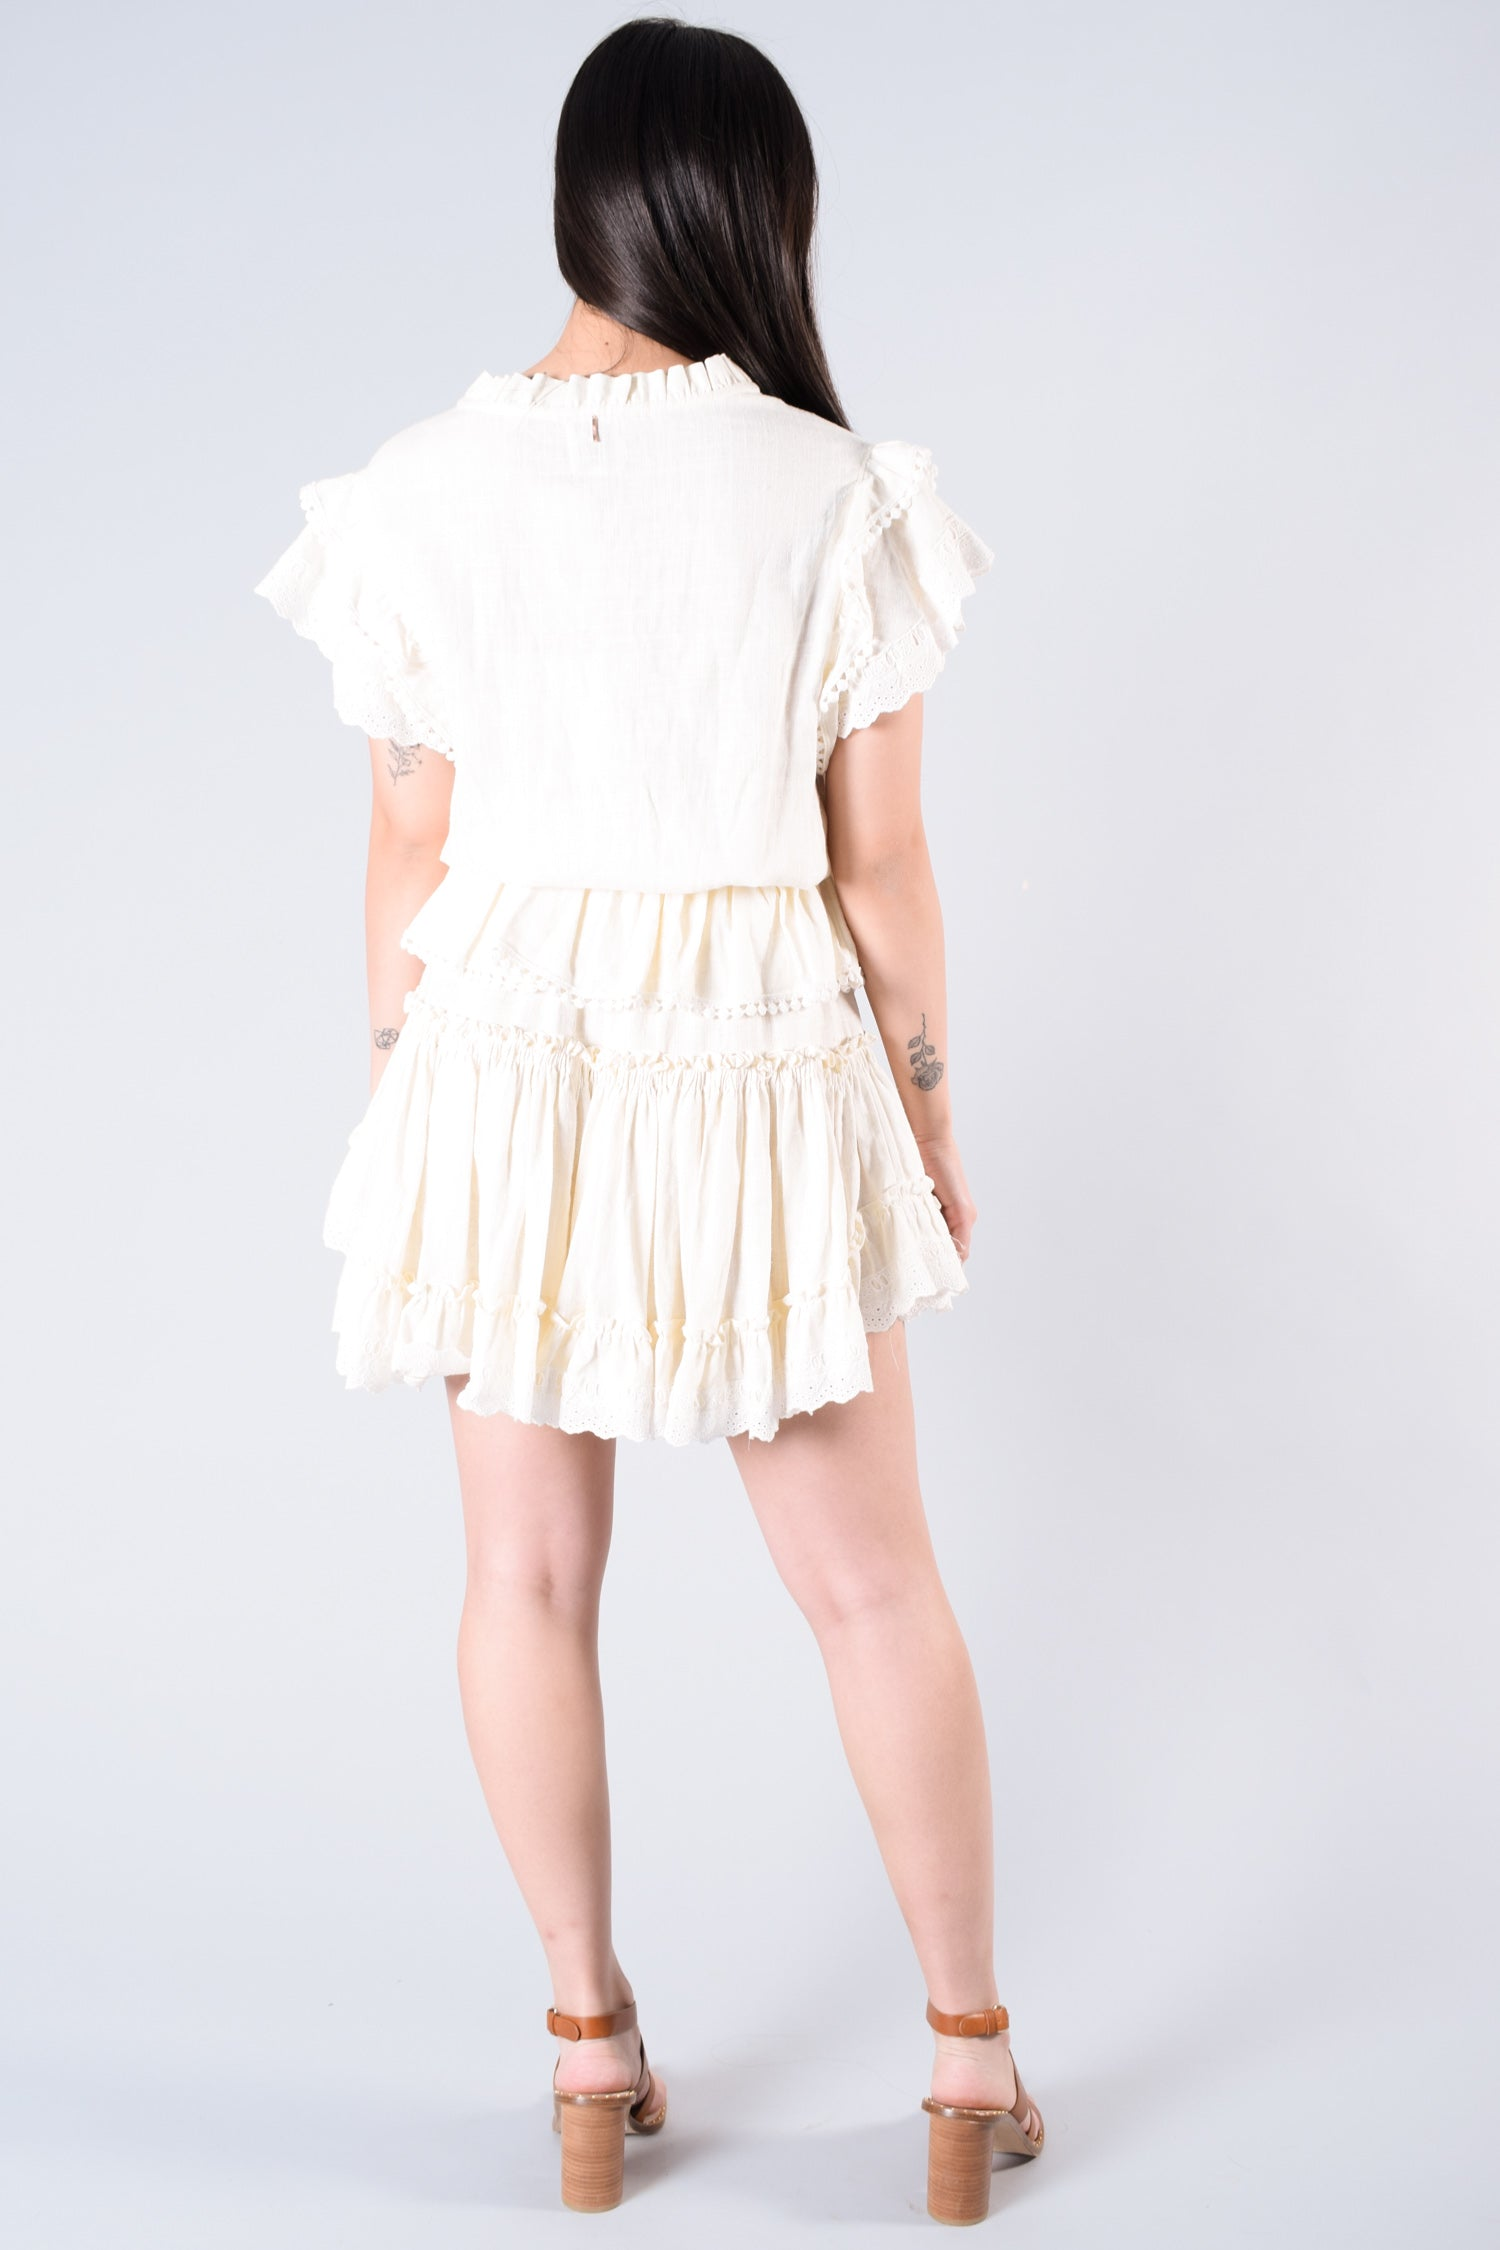 Misa Los Angeles Cream Ruffle Dress Size XS